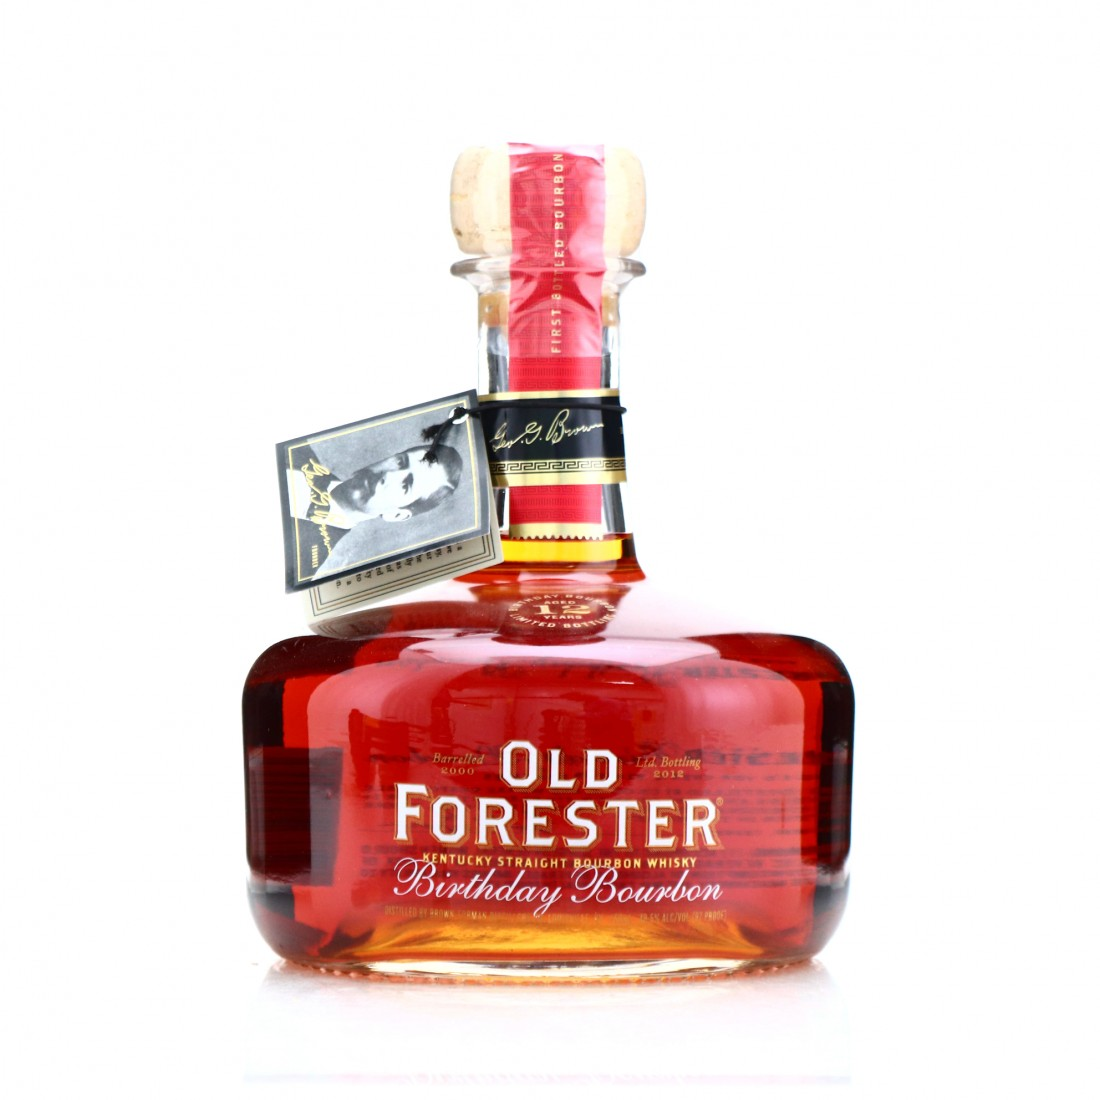 Old Forester 2000 Birthday Bourbon 2012 Release